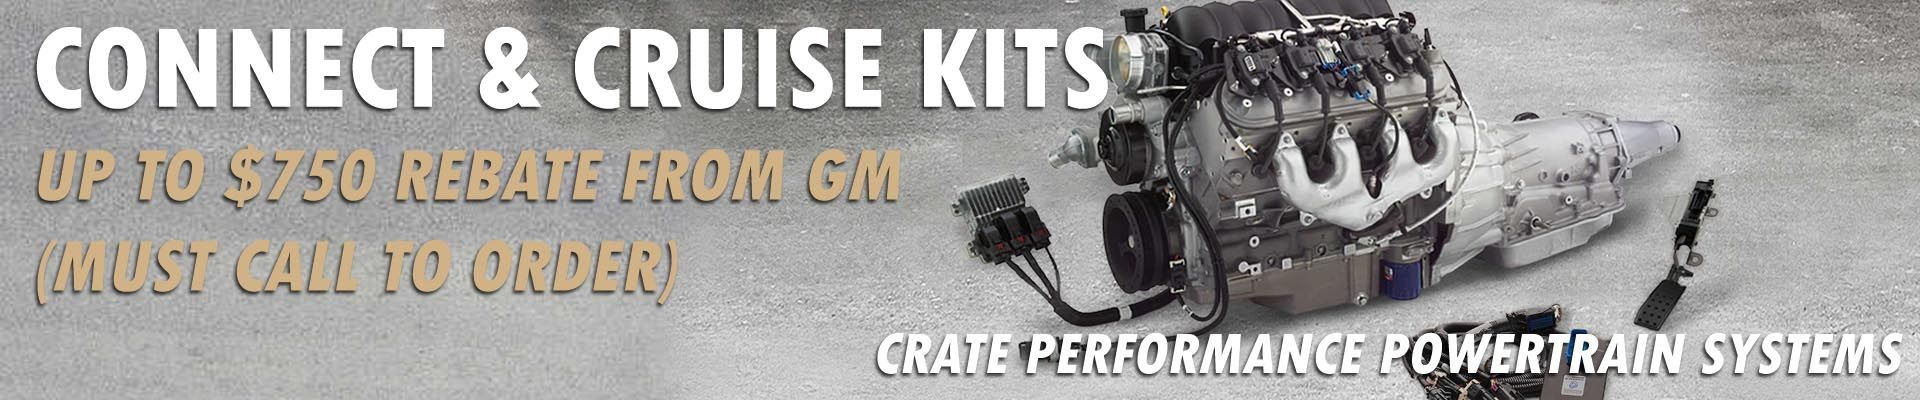 gm connect and cruise kit - national gm parts